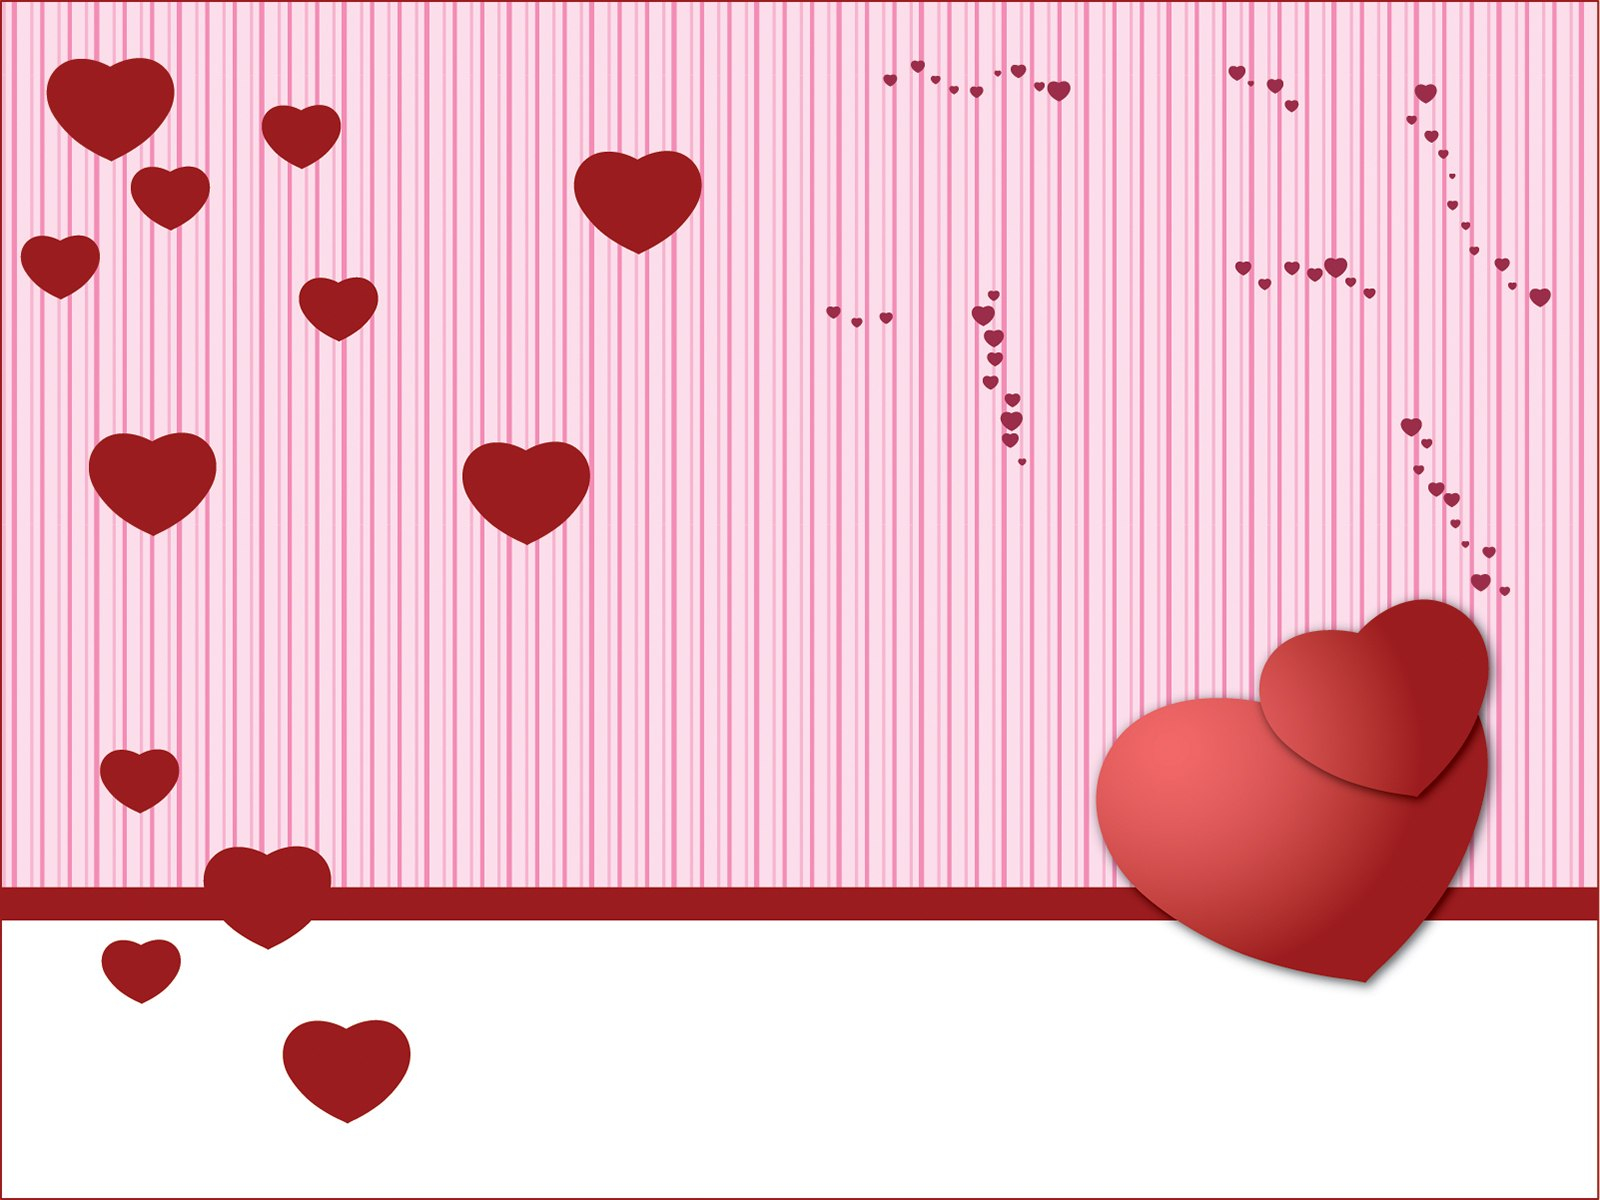 Days Powerpoint  Free Ppt Backgrounds And Templates Throughout Valentine Powerpoint Templates Free